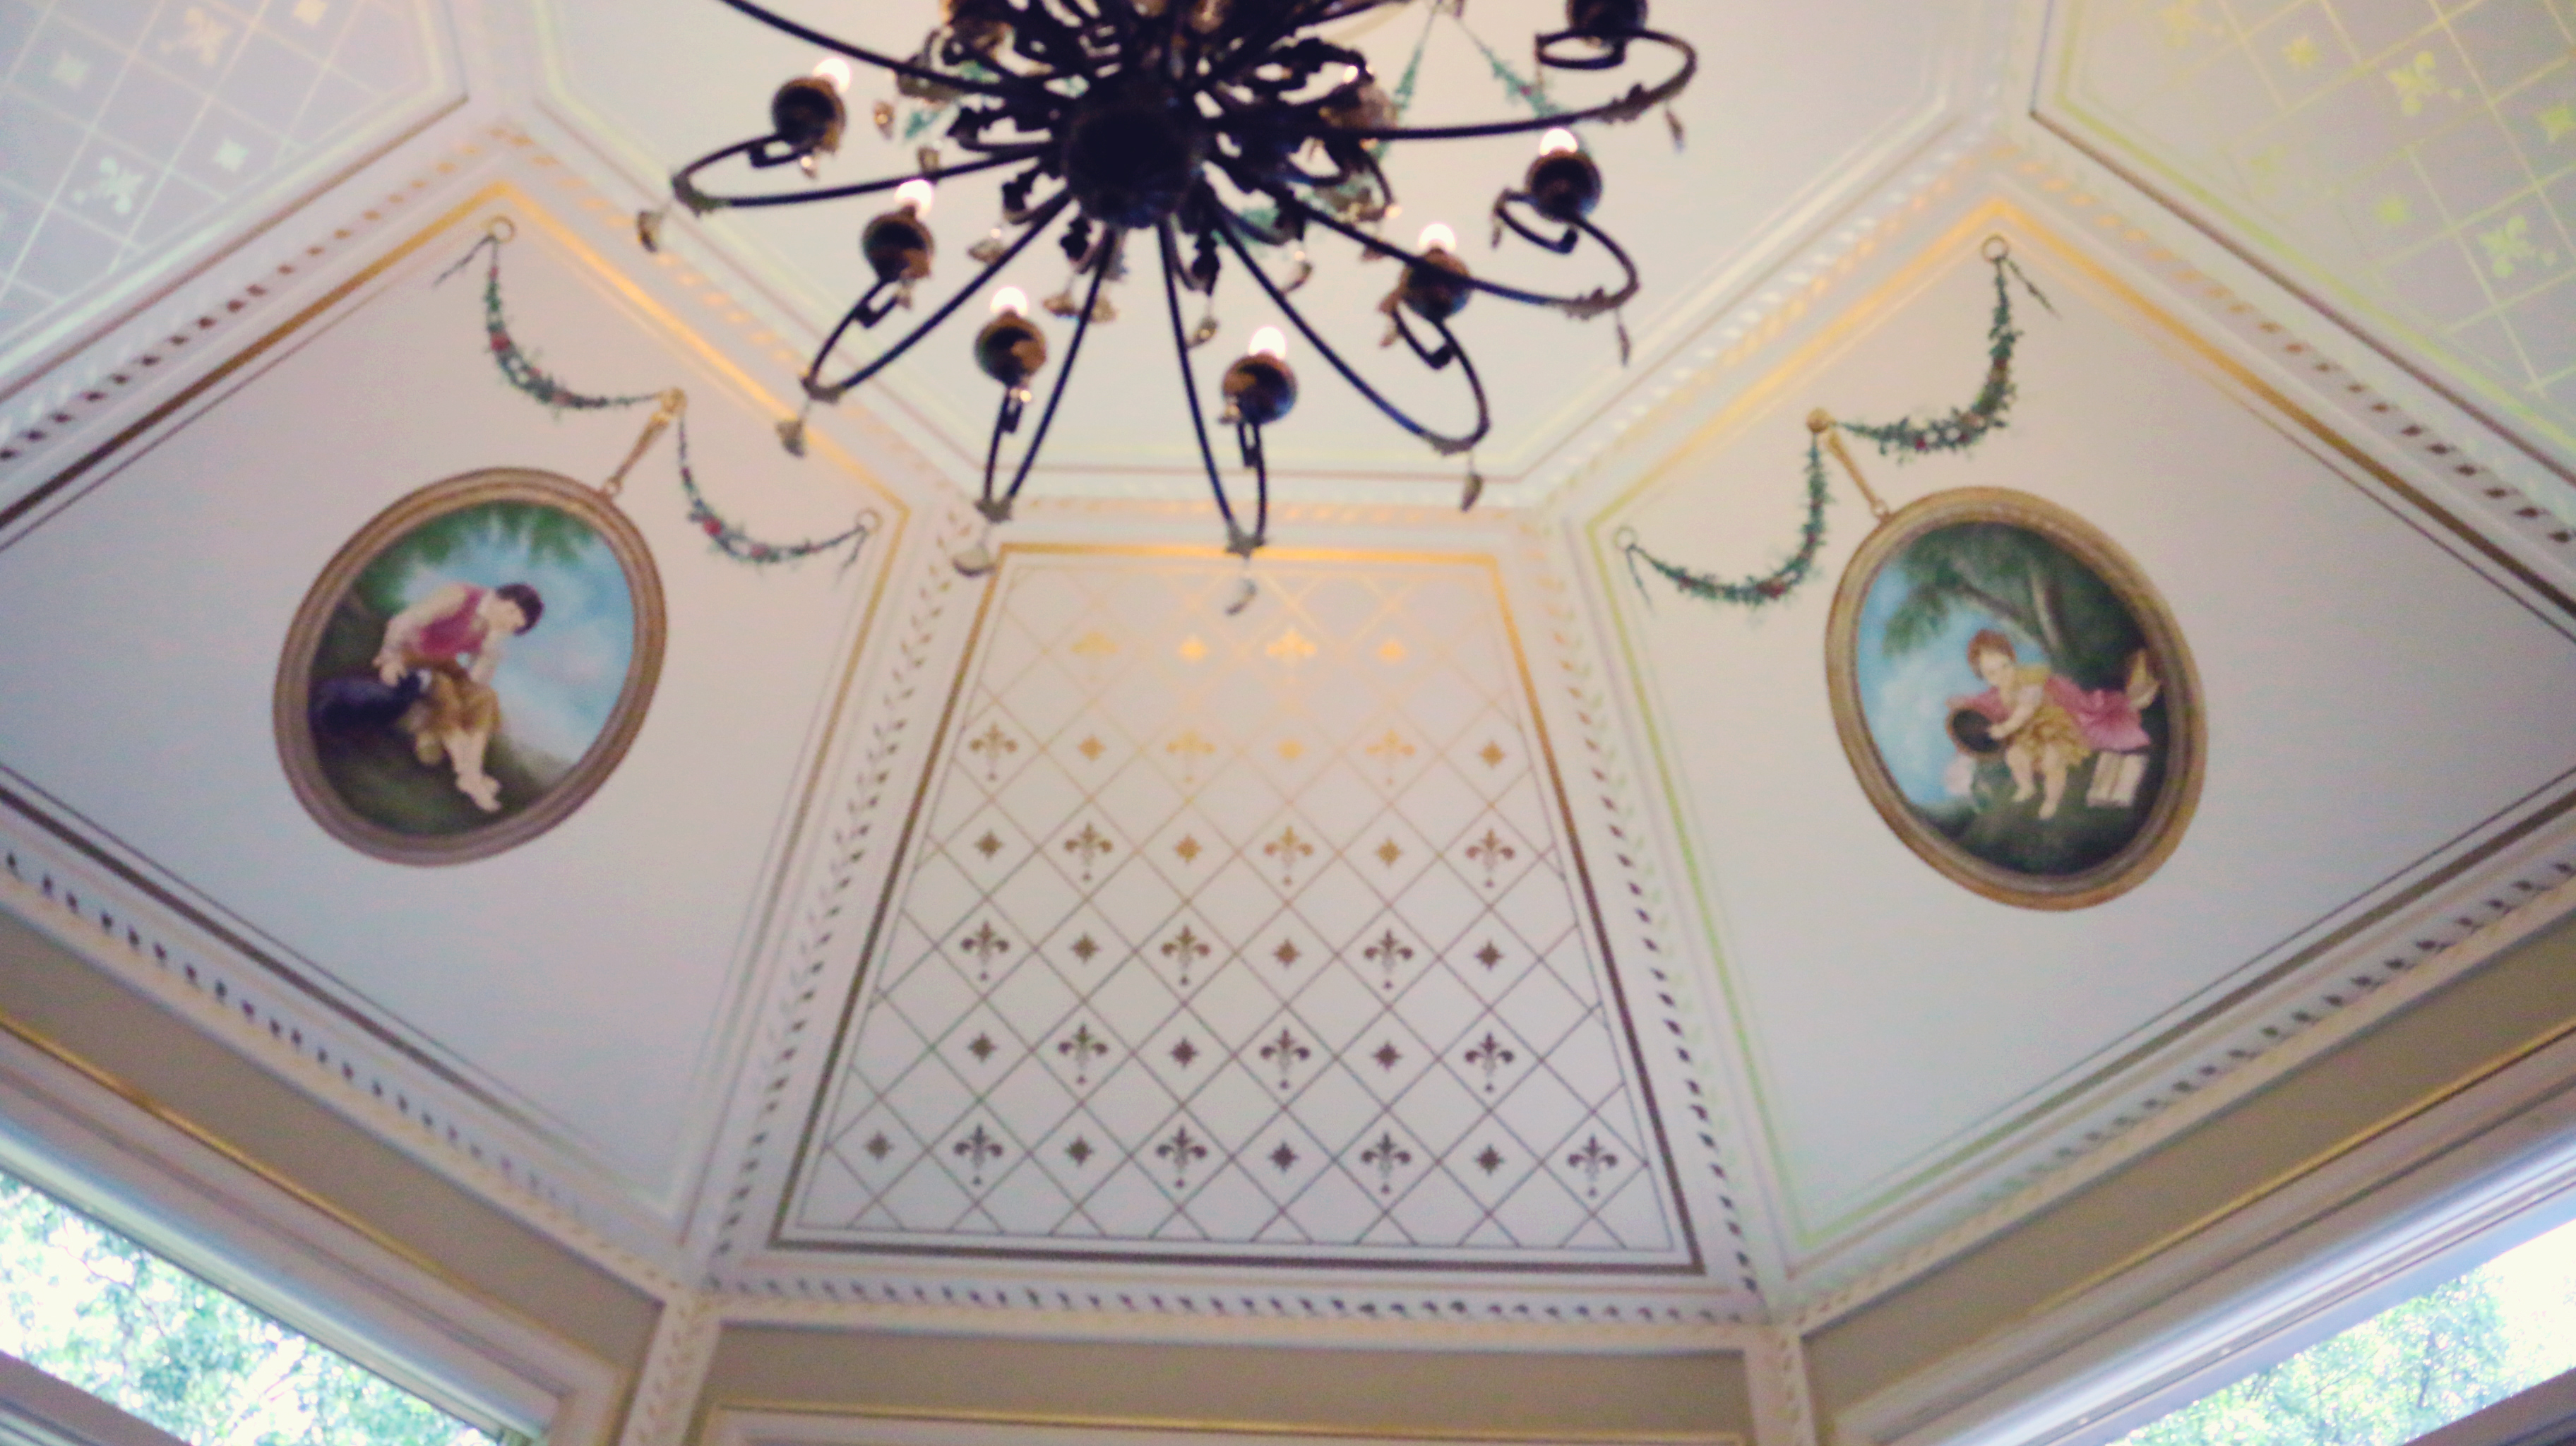 Mural & Ceiling Dome Wyckoff NJ